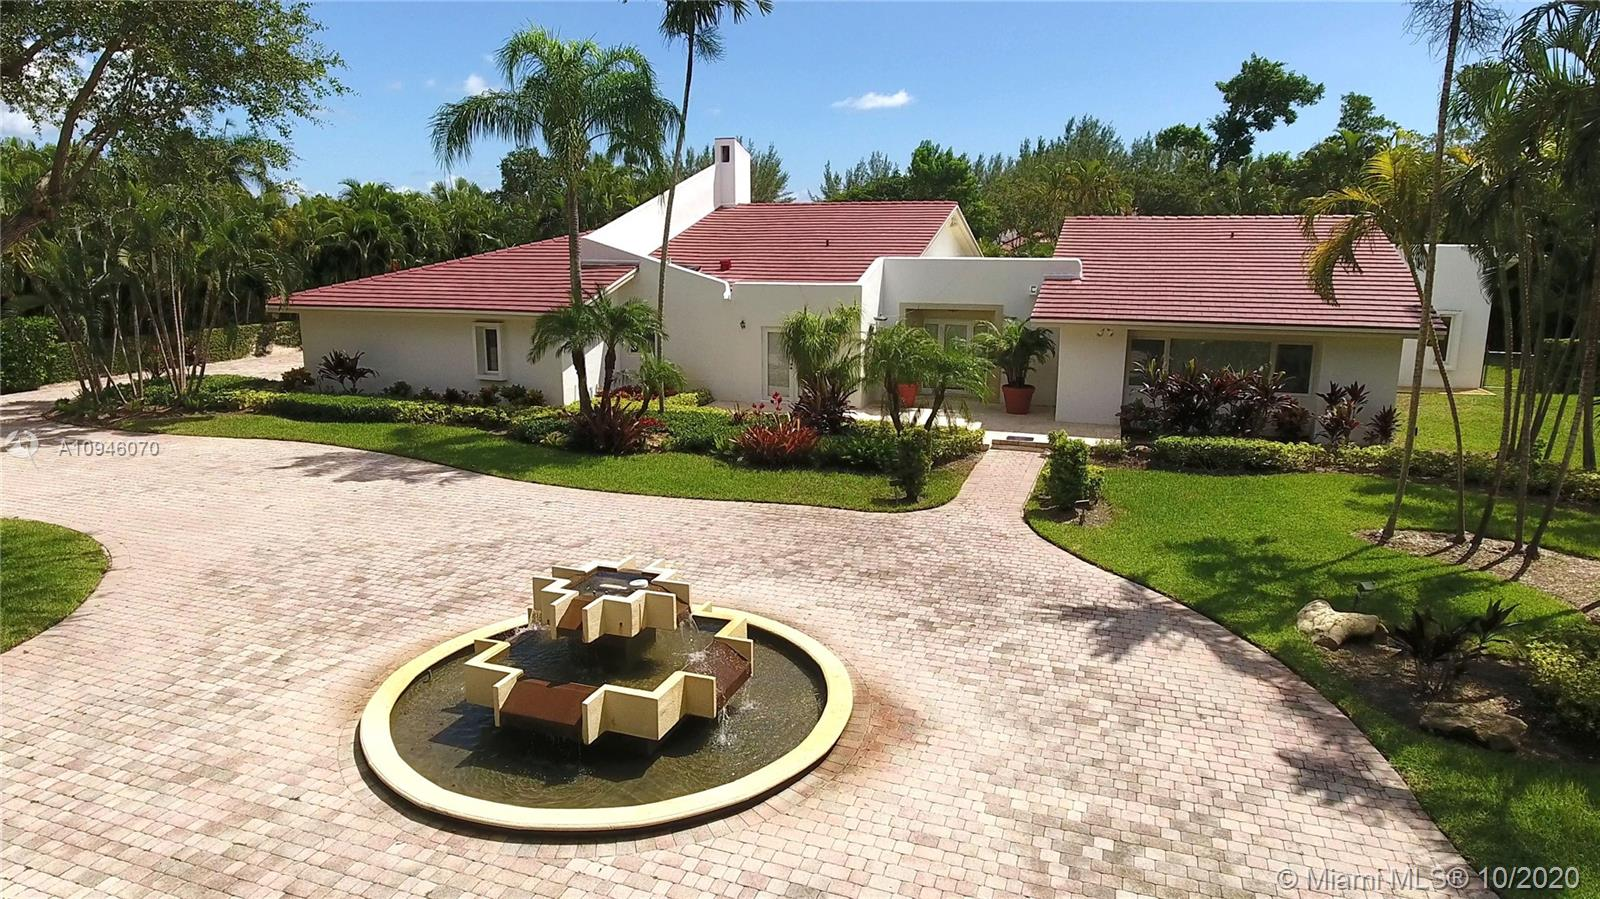 8303 Old Cutler Rd, Coral Gables, Florida 33143, 5 Bedrooms Bedrooms, ,5 BathroomsBathrooms,Residential,For Sale,8303 Old Cutler Rd,A10946070